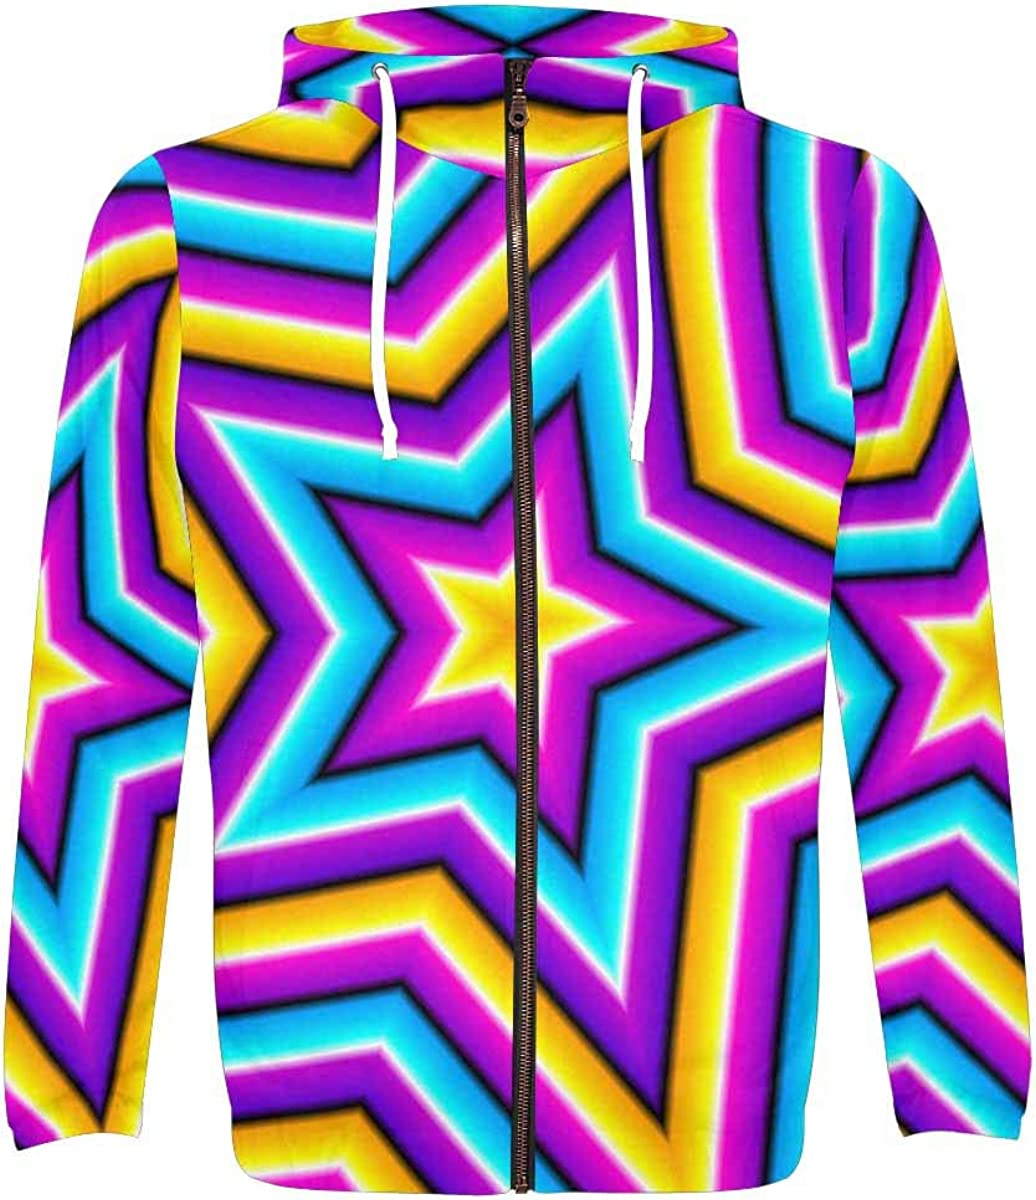 InterestPrint Polyester Hoodies for Men Elegant All with and Print 5% OFF Over